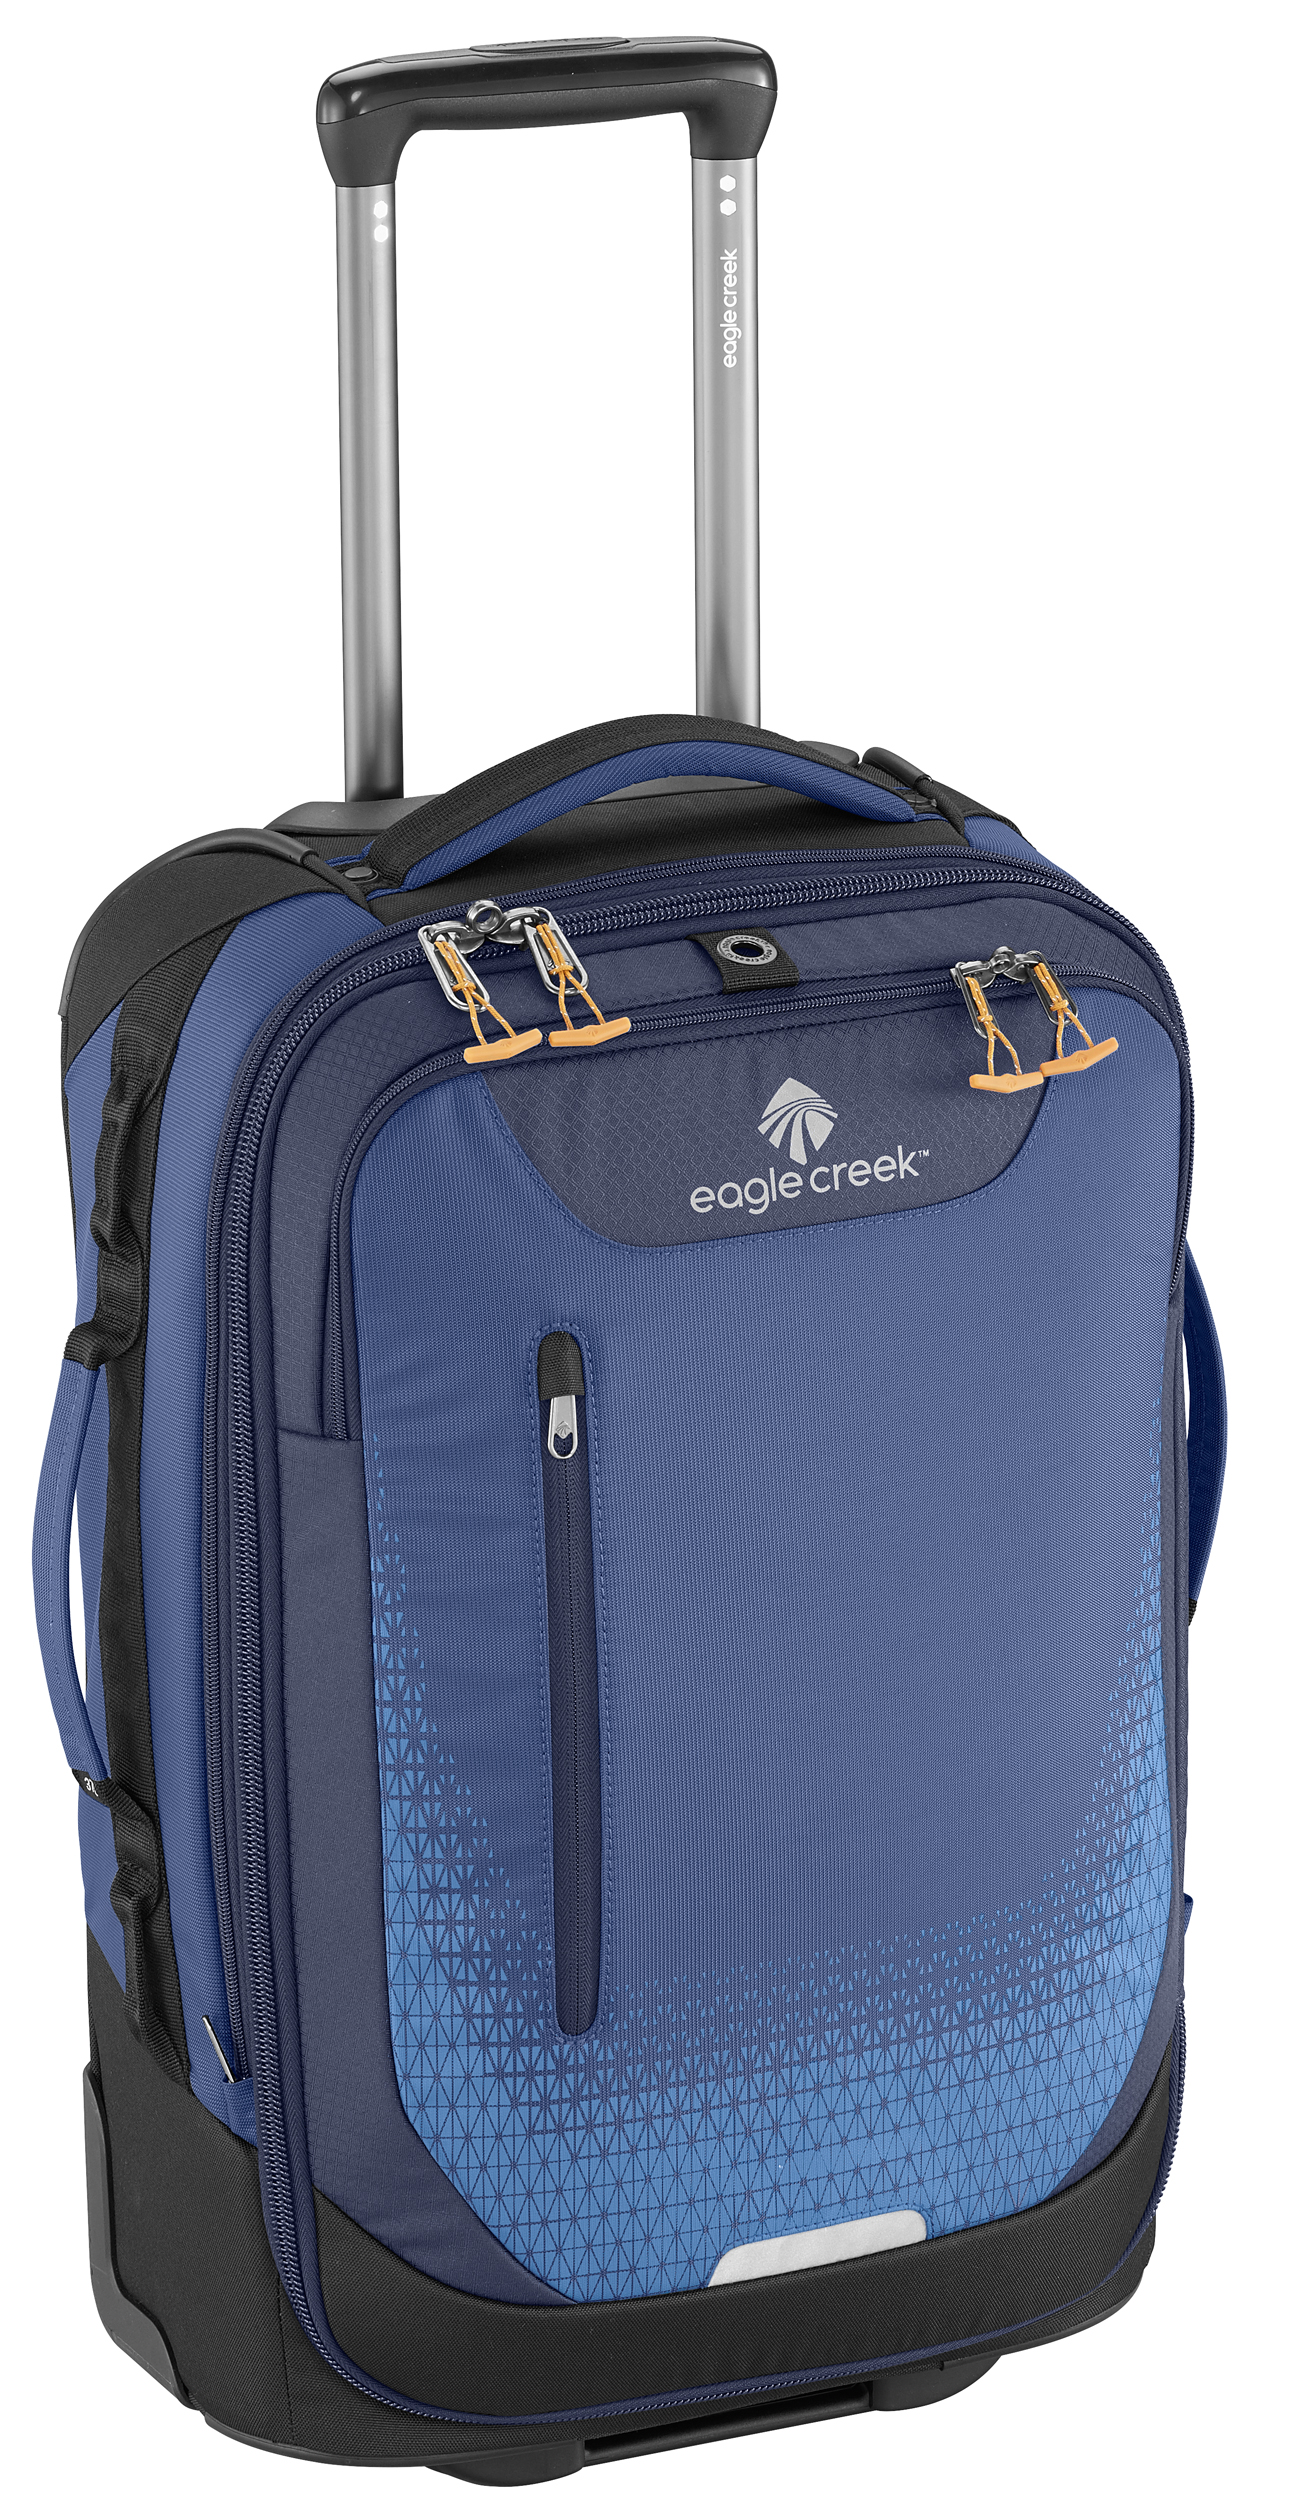 Expanse™ International Carry-On by Eagle Creek (Color: Twilight Blue)